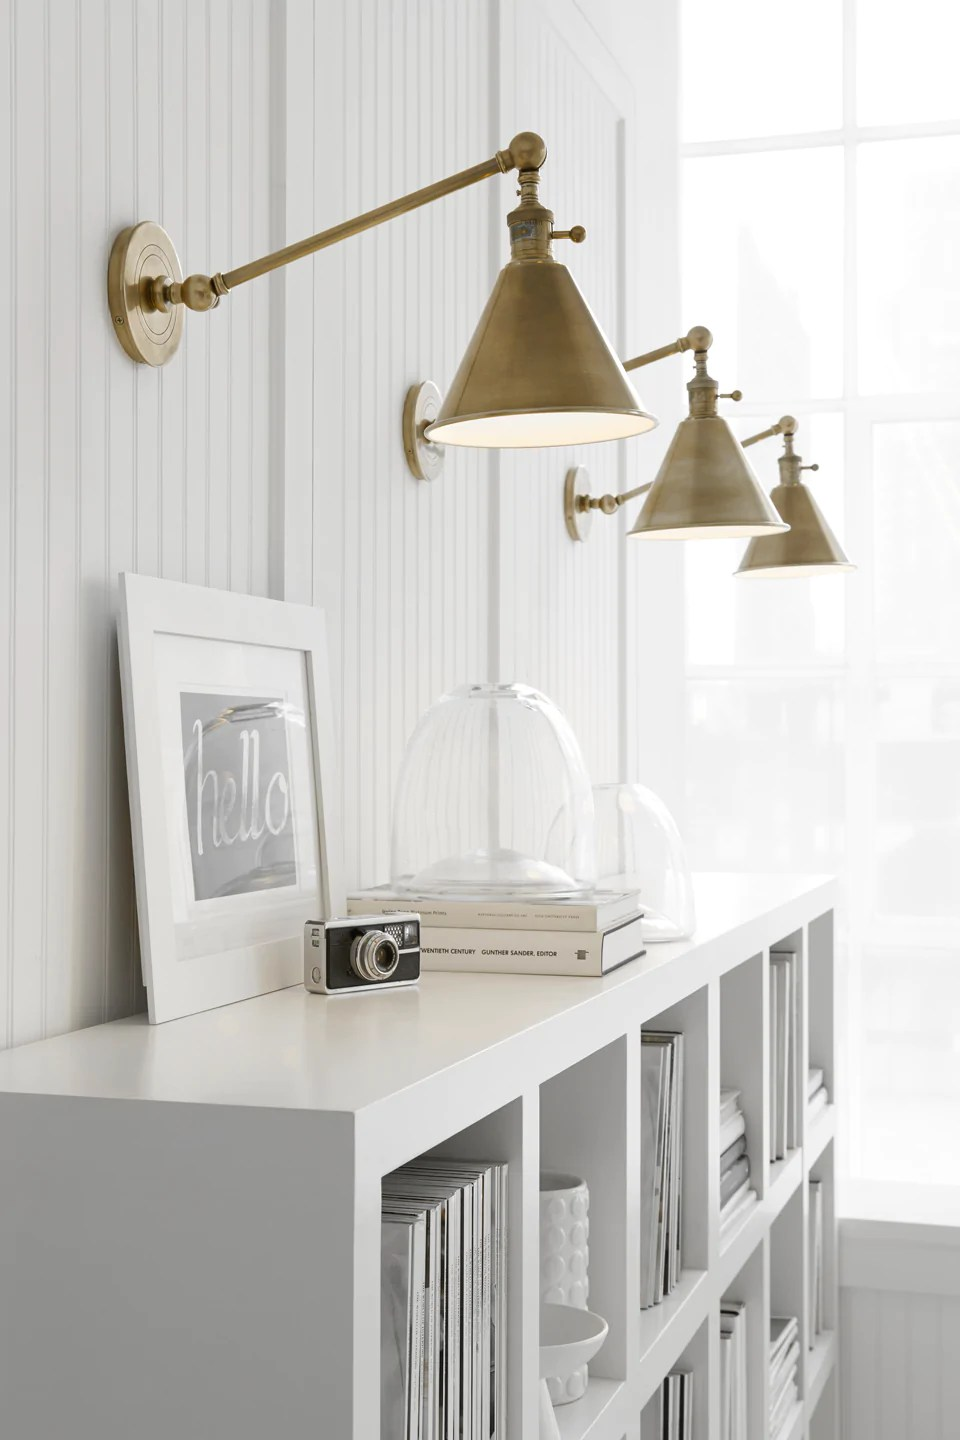 Library Furniture Australia Boston Functional Single Arm Library Light Laura Kincade Australia